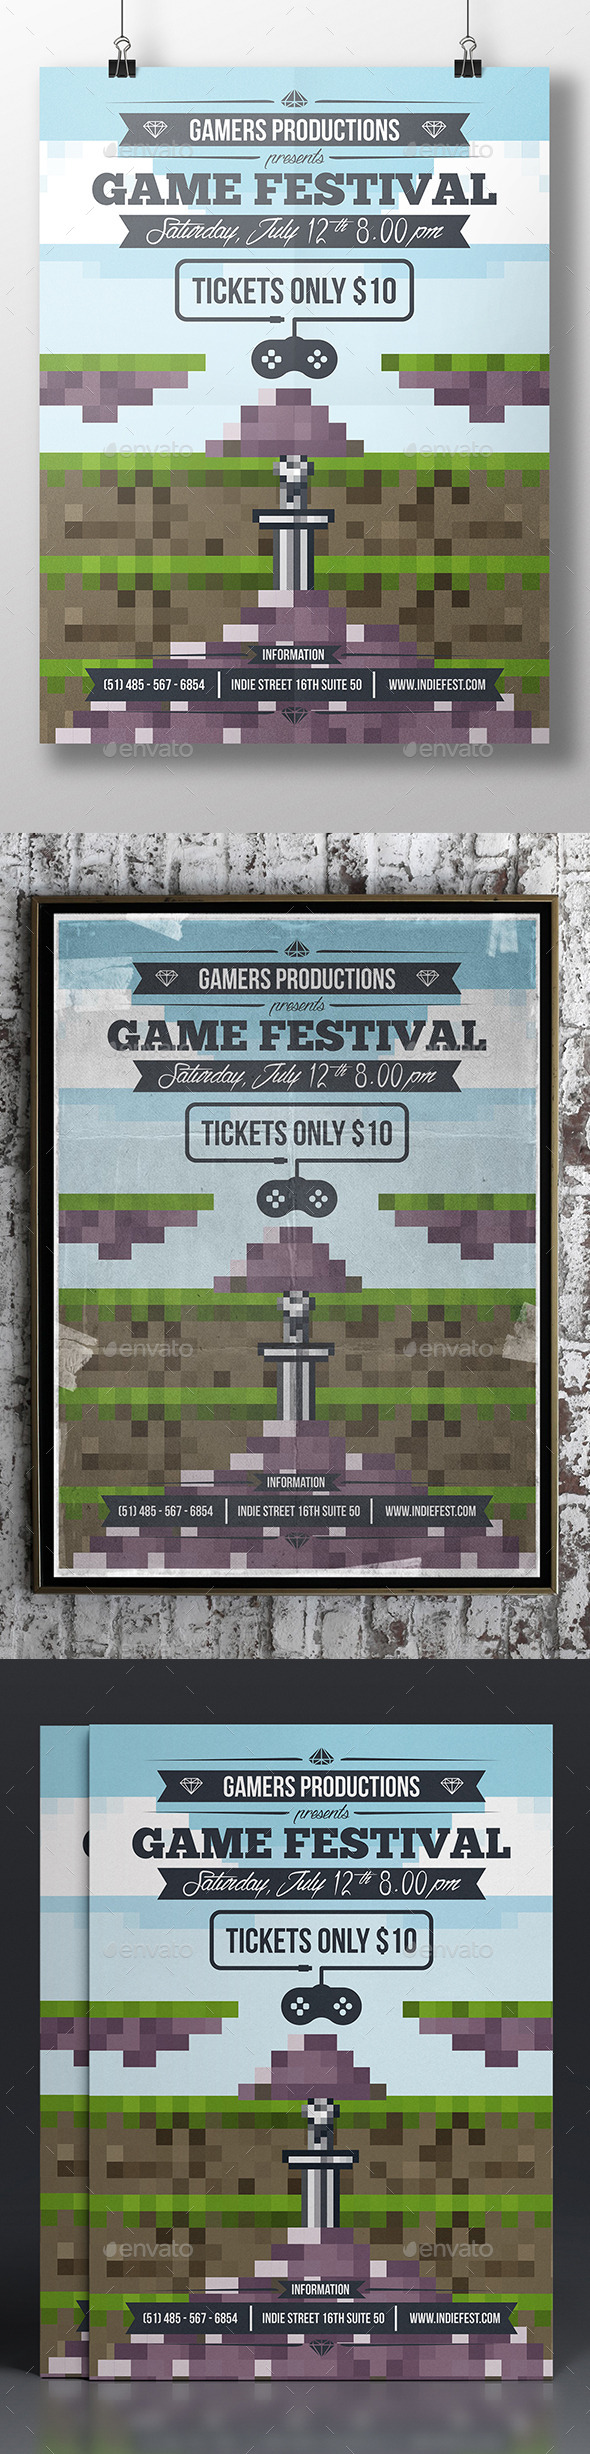 GraphicRiver Game Pixel Art Poster Template 11166807